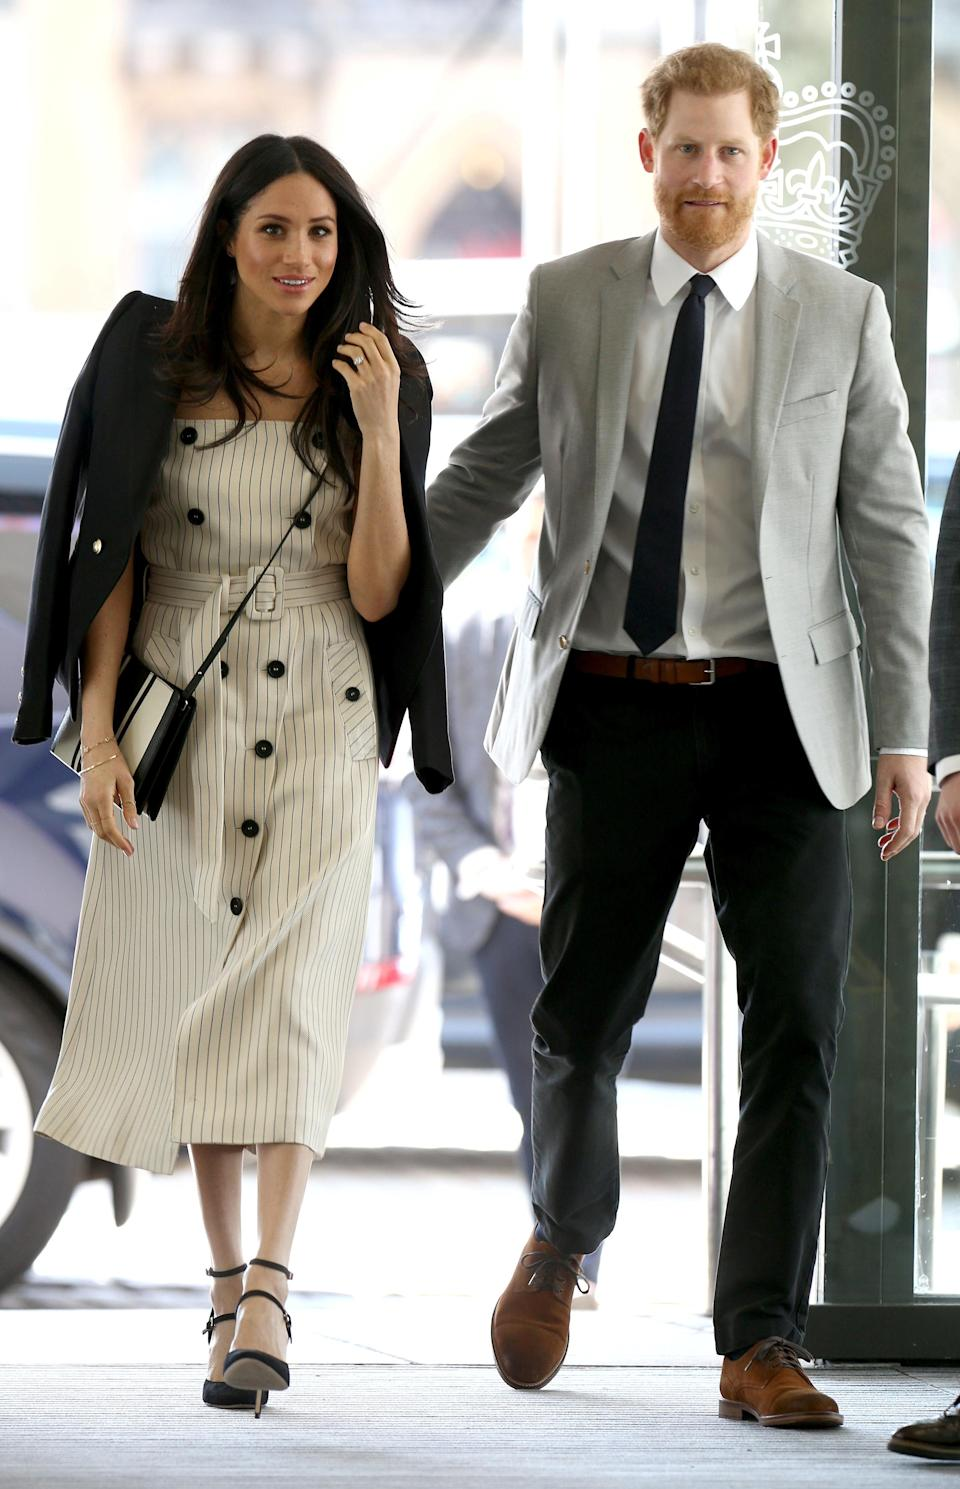 <p>Markle accompanied her fiancé, Prince Harry, as he began his new role as Commonwealth Youth Ambassador. </p>